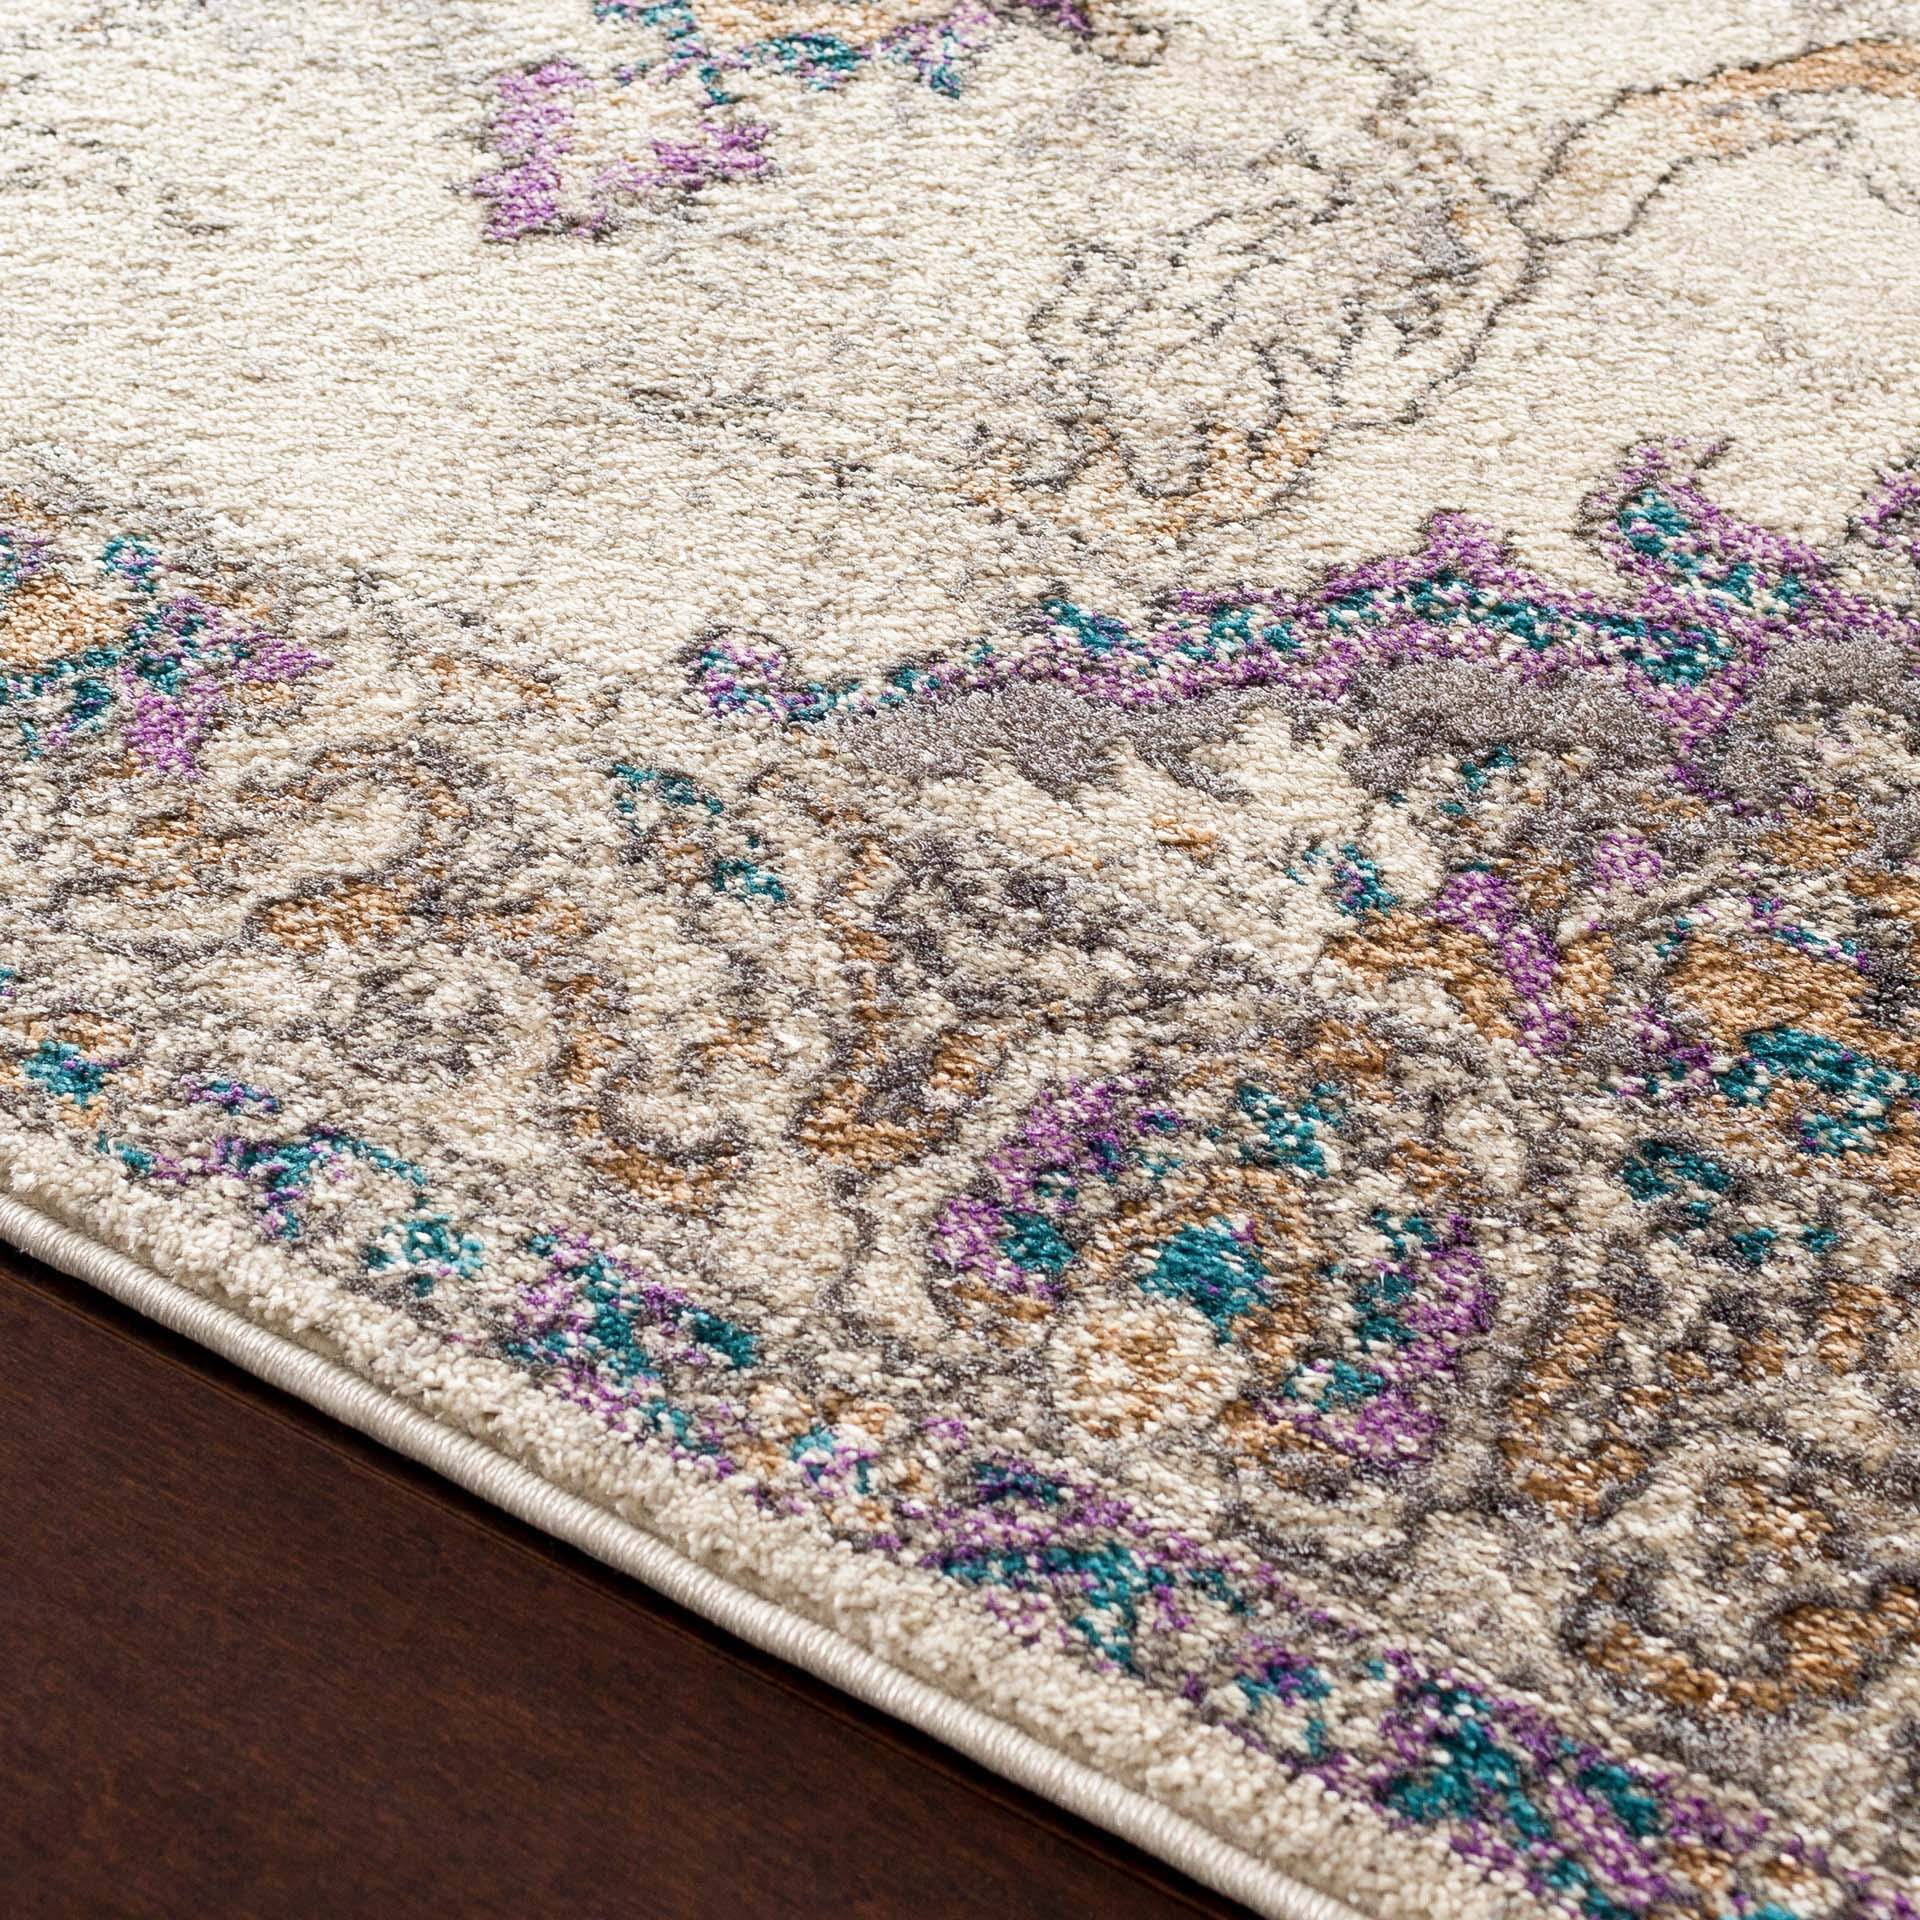 Classic ivory Turkish area rug with gray, purple and aqua ribbon and floral pattern - Close-up